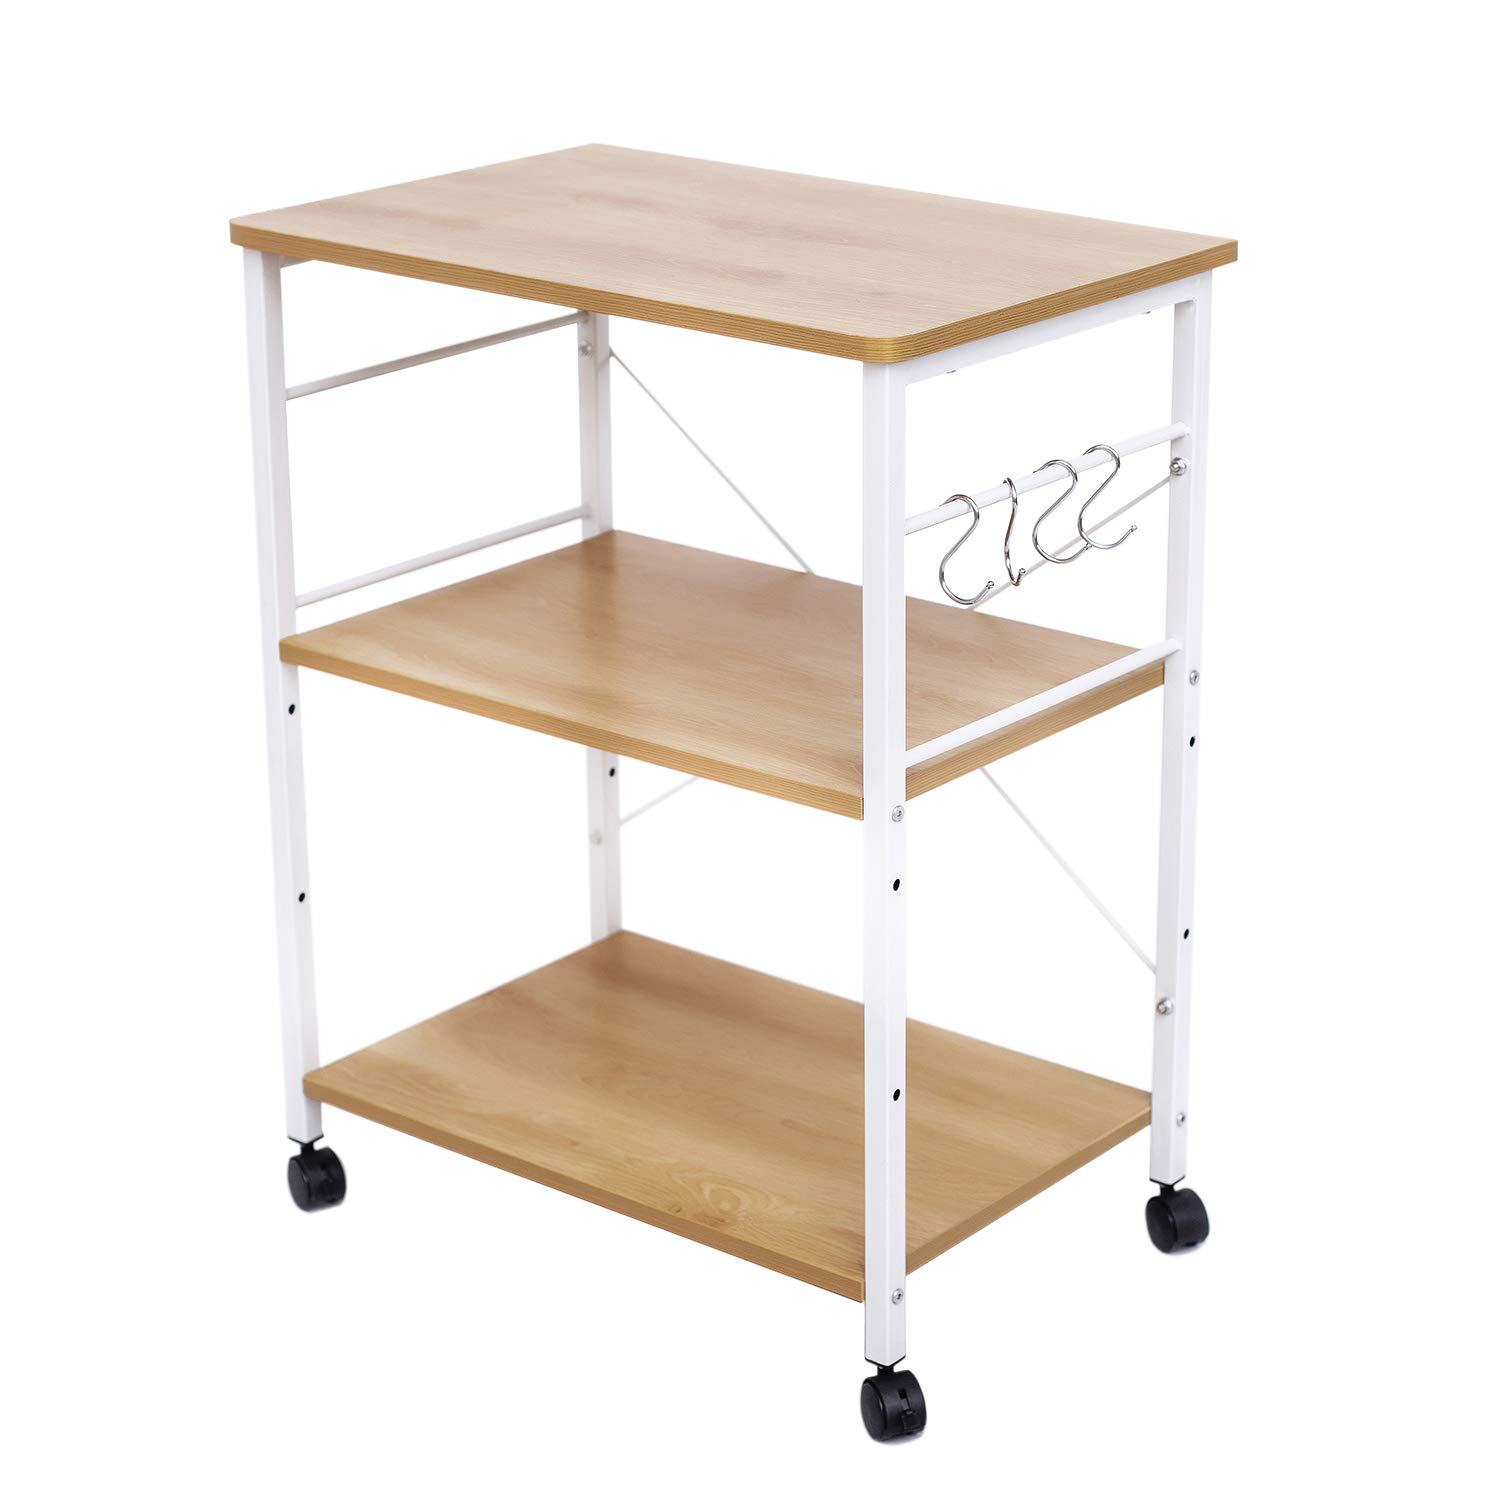 HOFOME Kitchen Baker's Rack, 3 Tier Kitchen Island Cart Utility Microwave Oven Cart, Metal Frame Storage Stand Shelf Light Oak by HOFOME